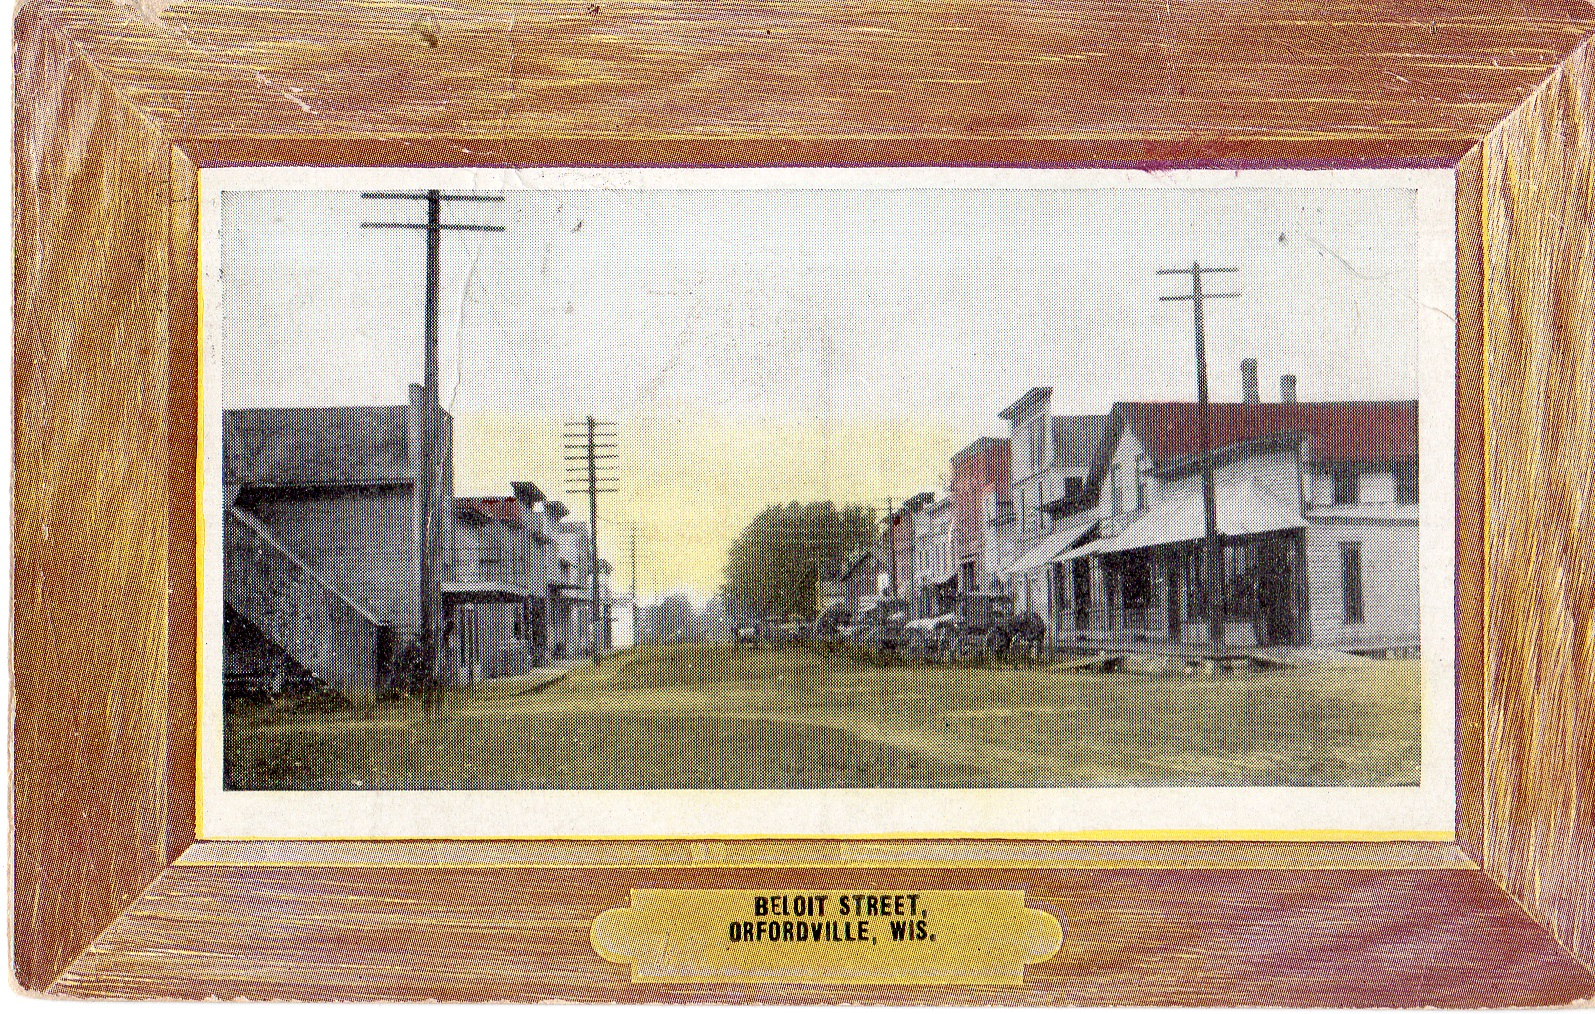 Postcard of Beloit Street